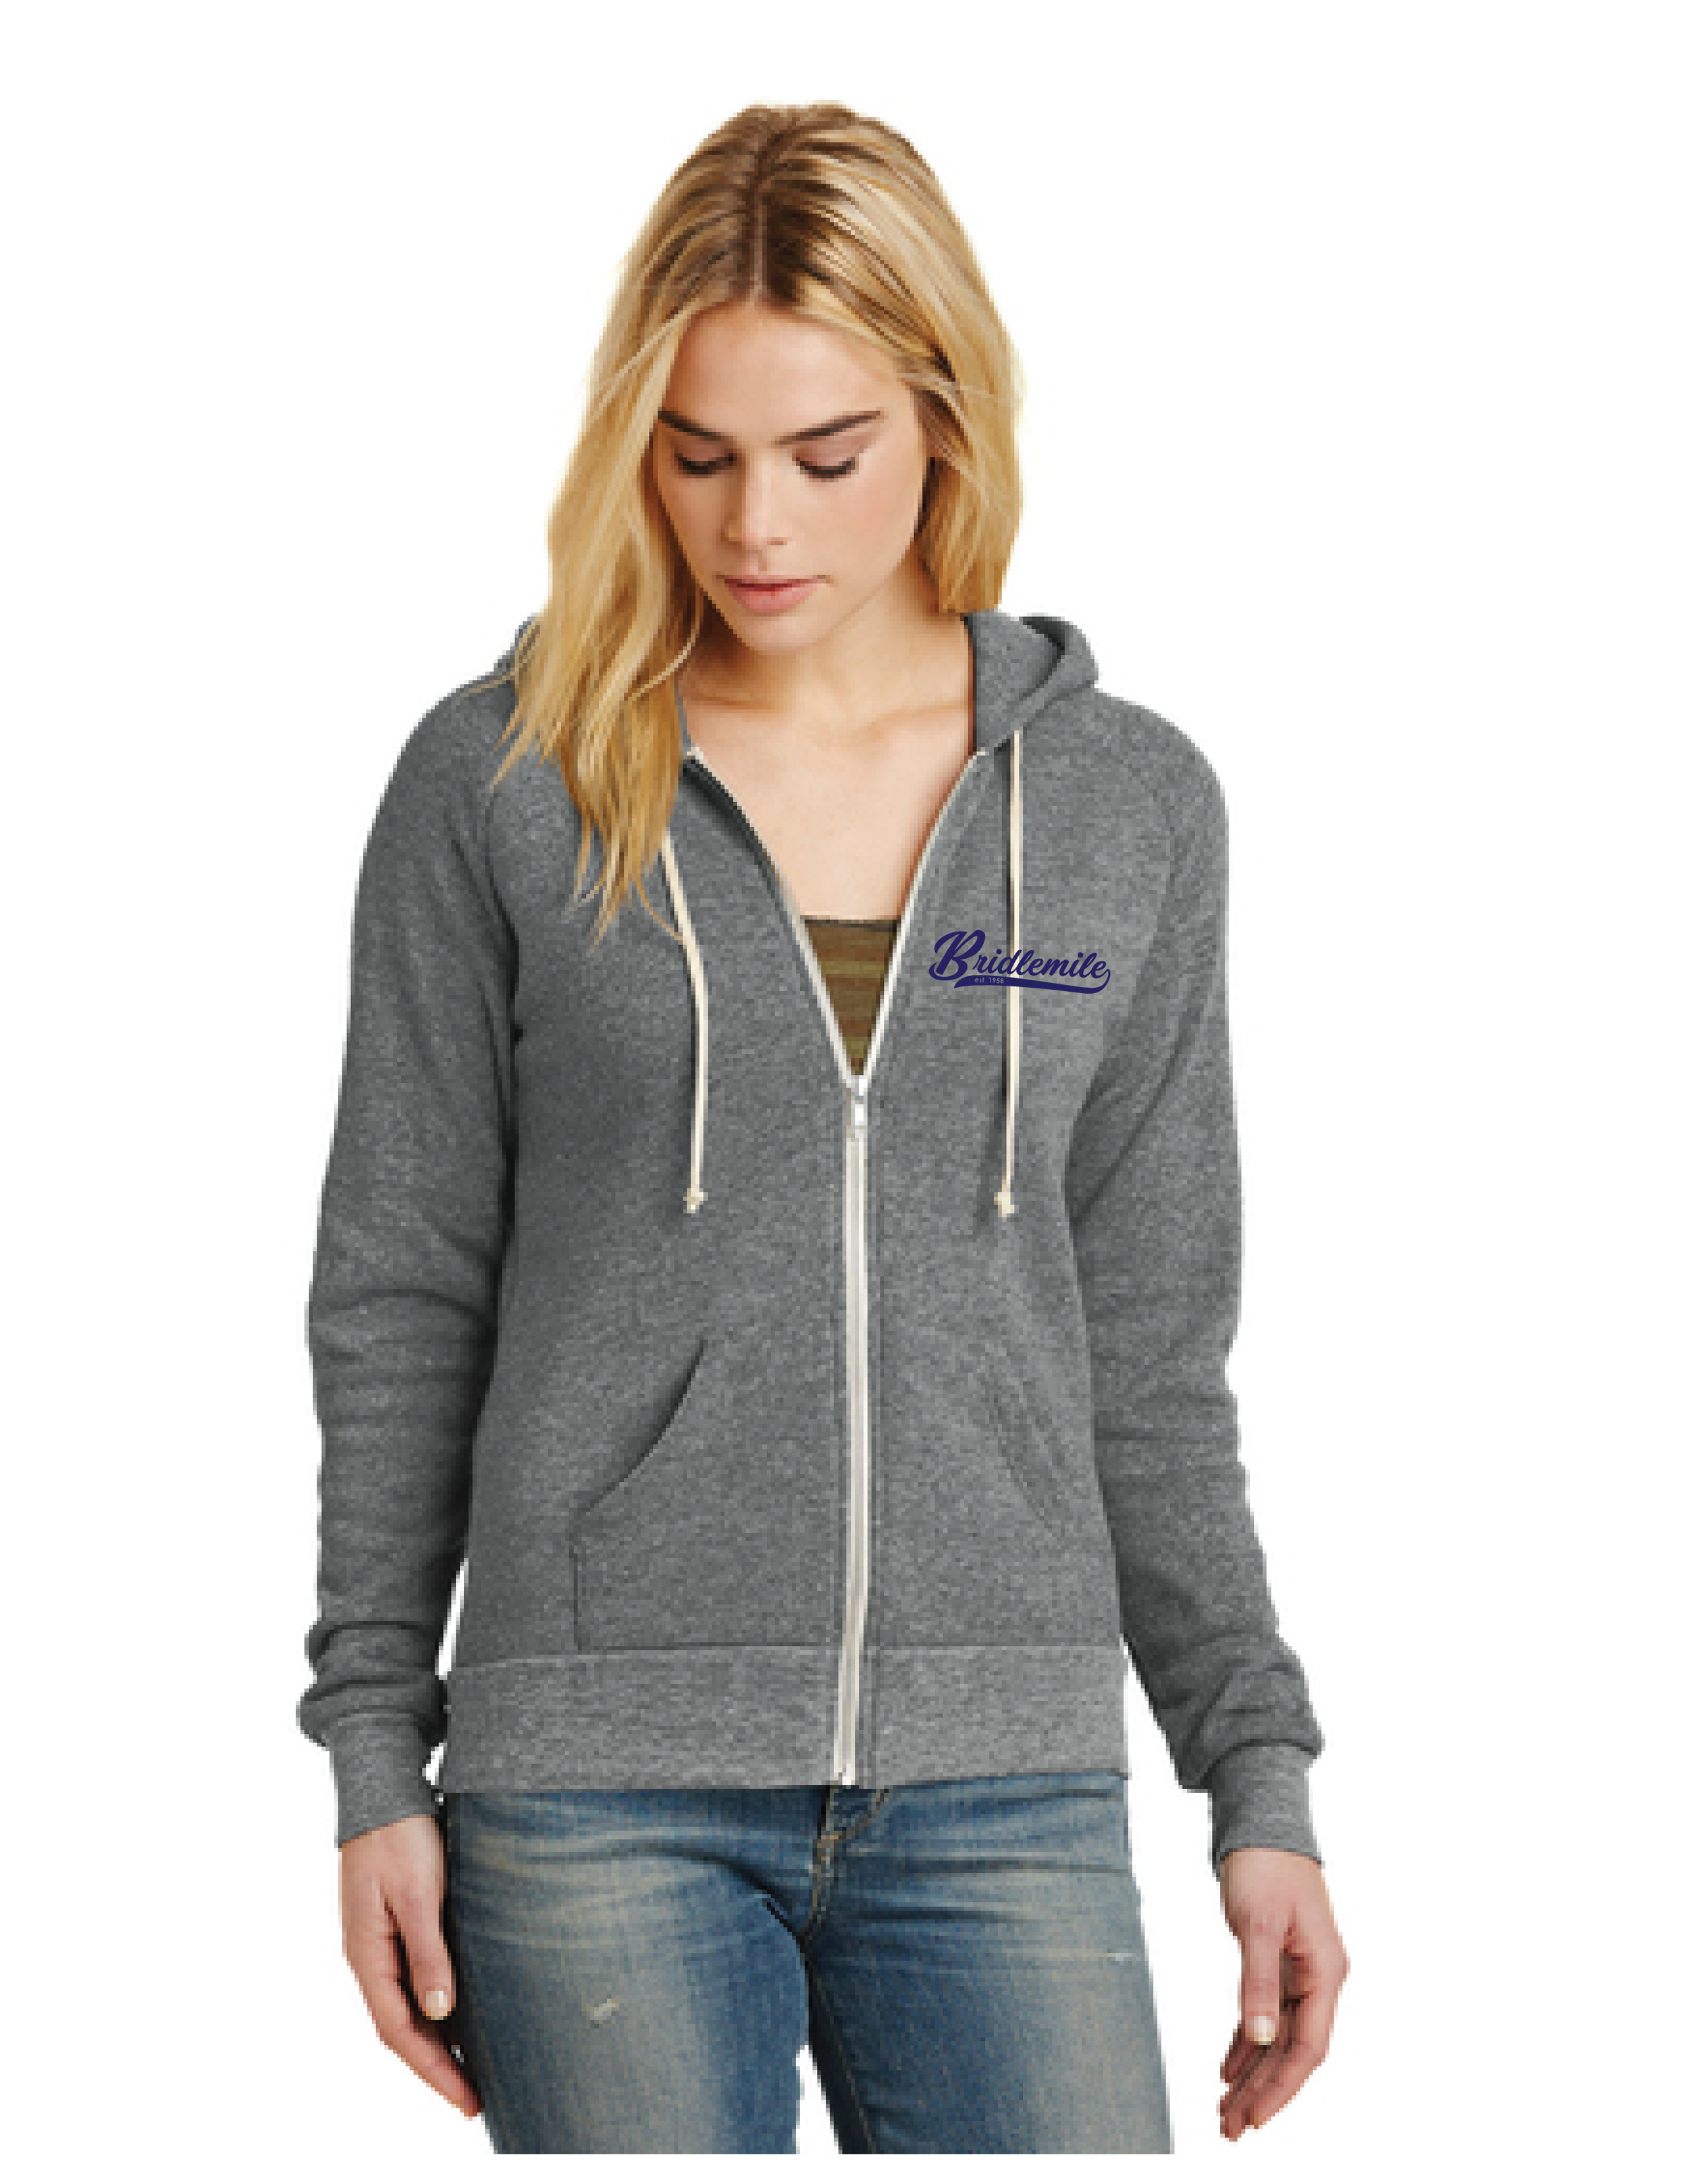 Bridlemile 60th Anniversary Designs_60th Embroidered Zip womens.png